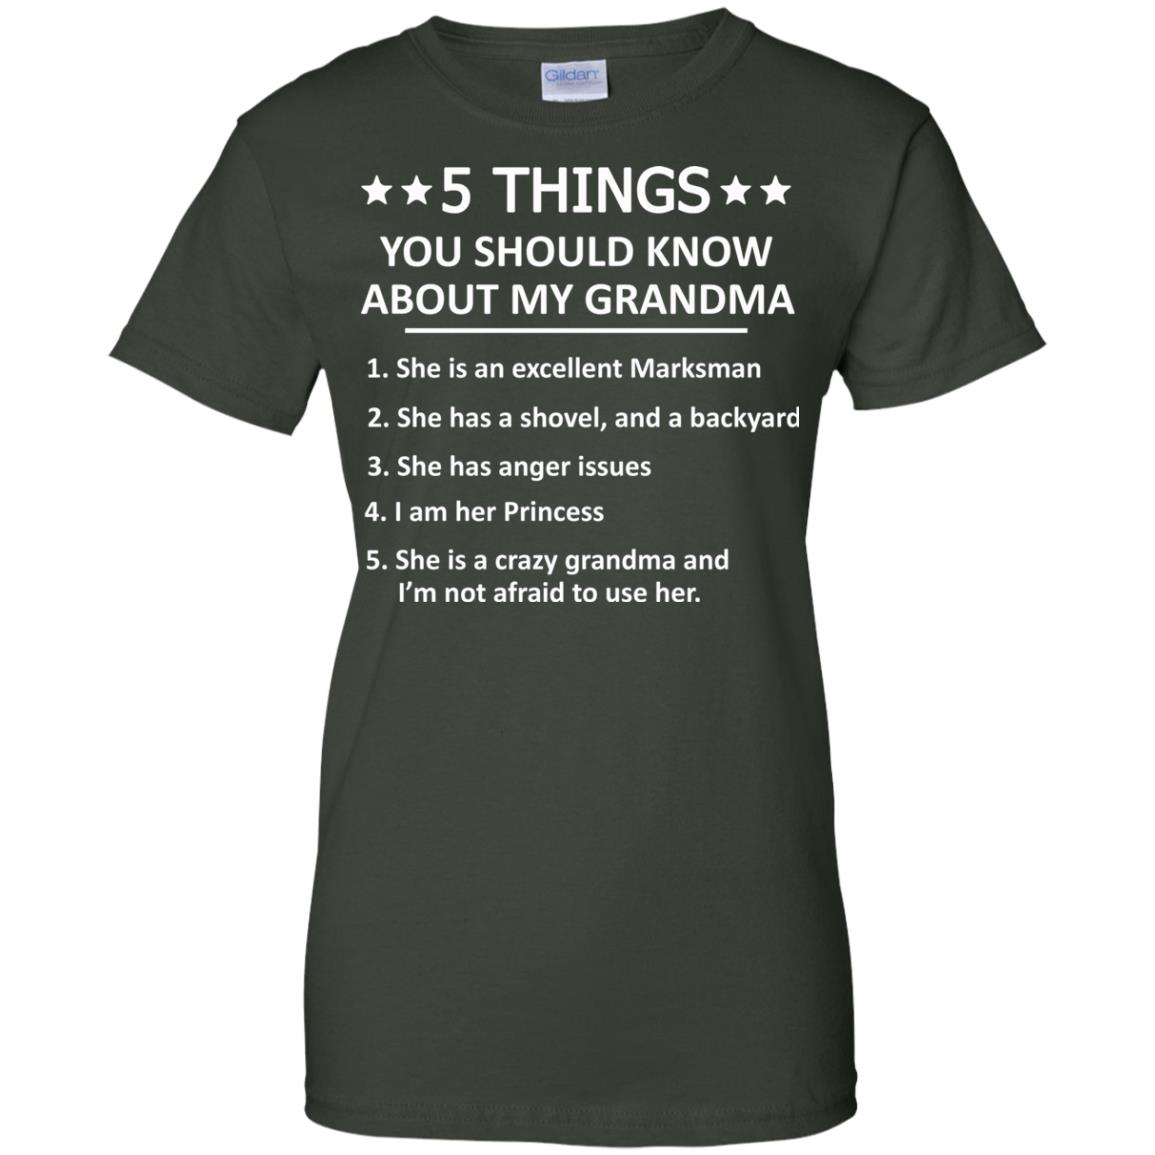 image 1338px 5 Things you should know about my Grandma t shirt, hoodies, tank top